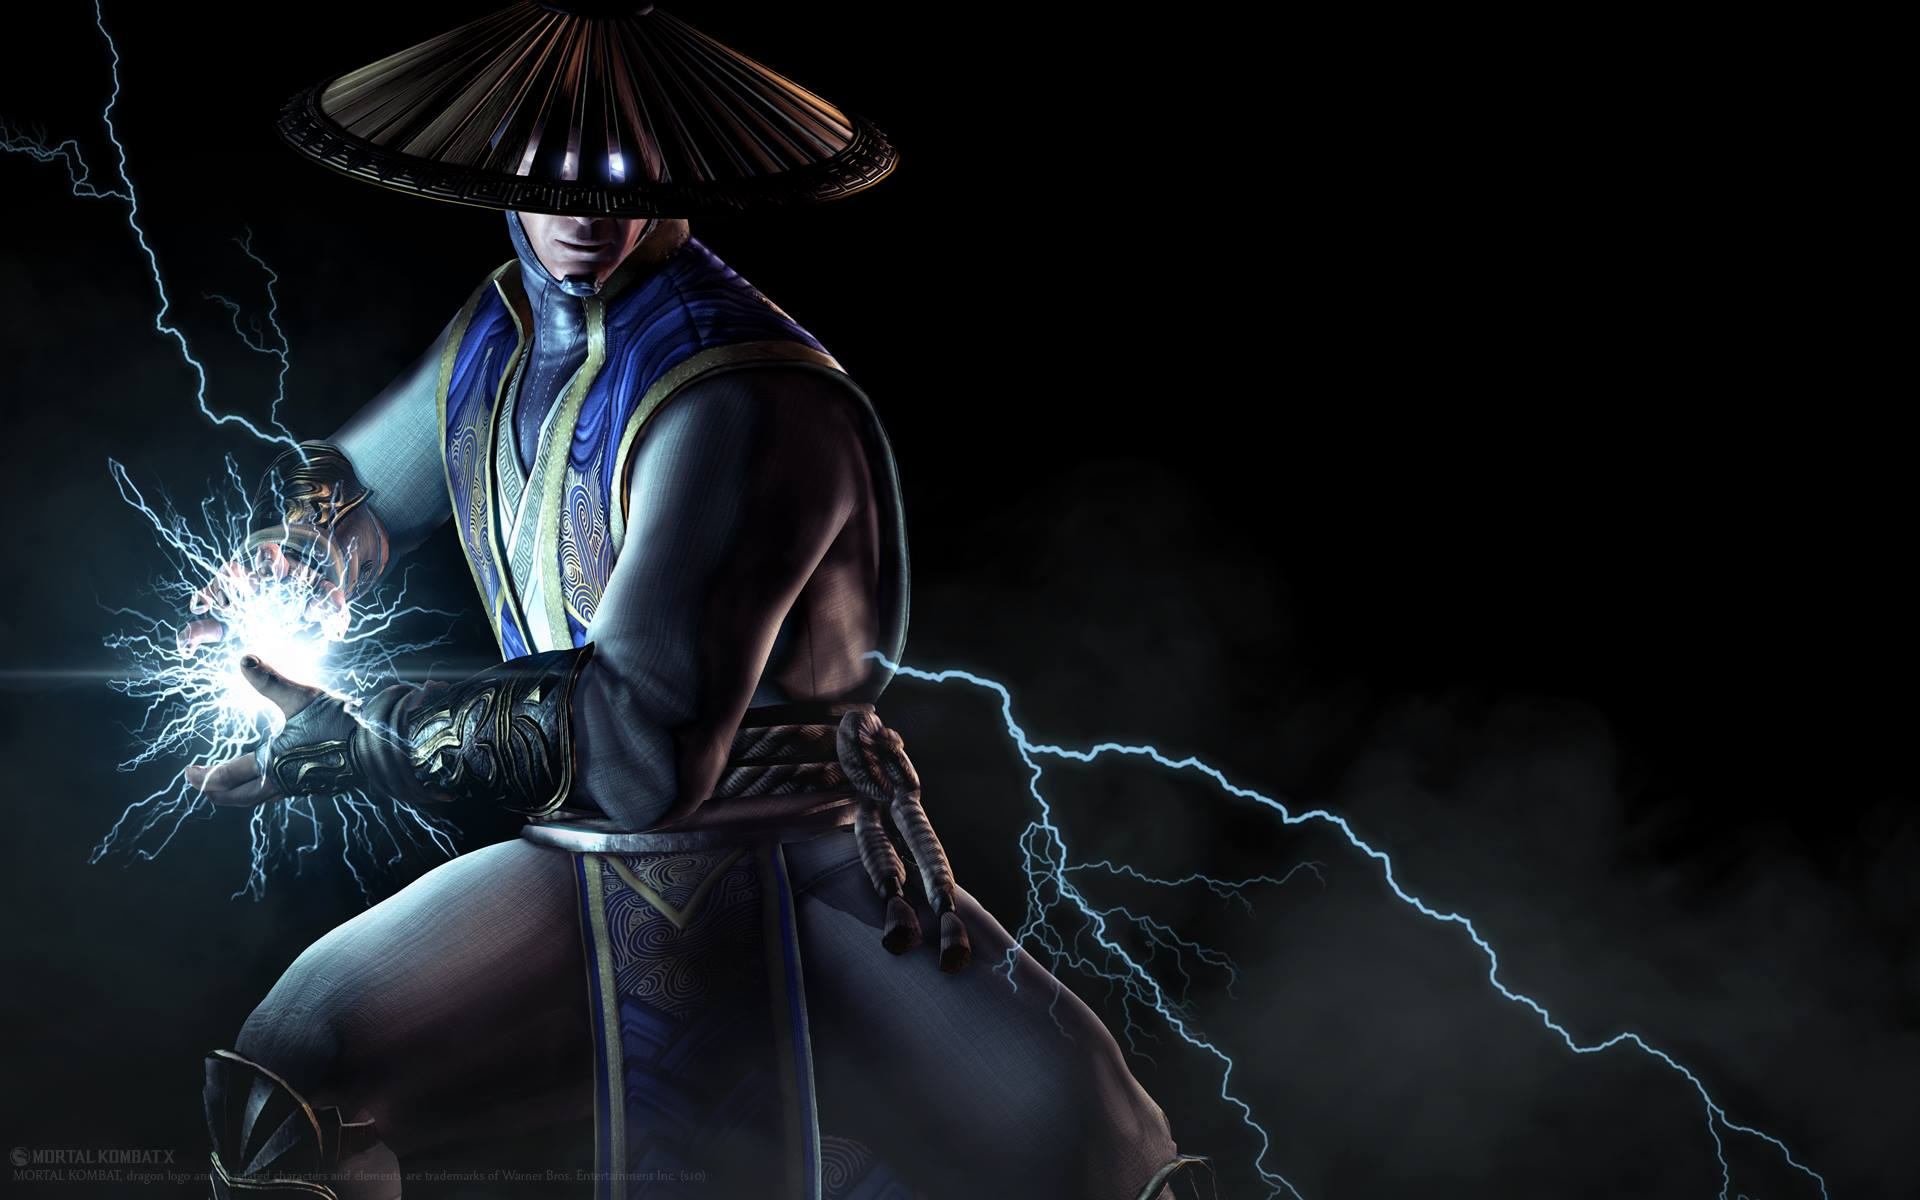 Mortal Kombat X Raiden Render Art Wallpaper Full HD 1920 1920x1200